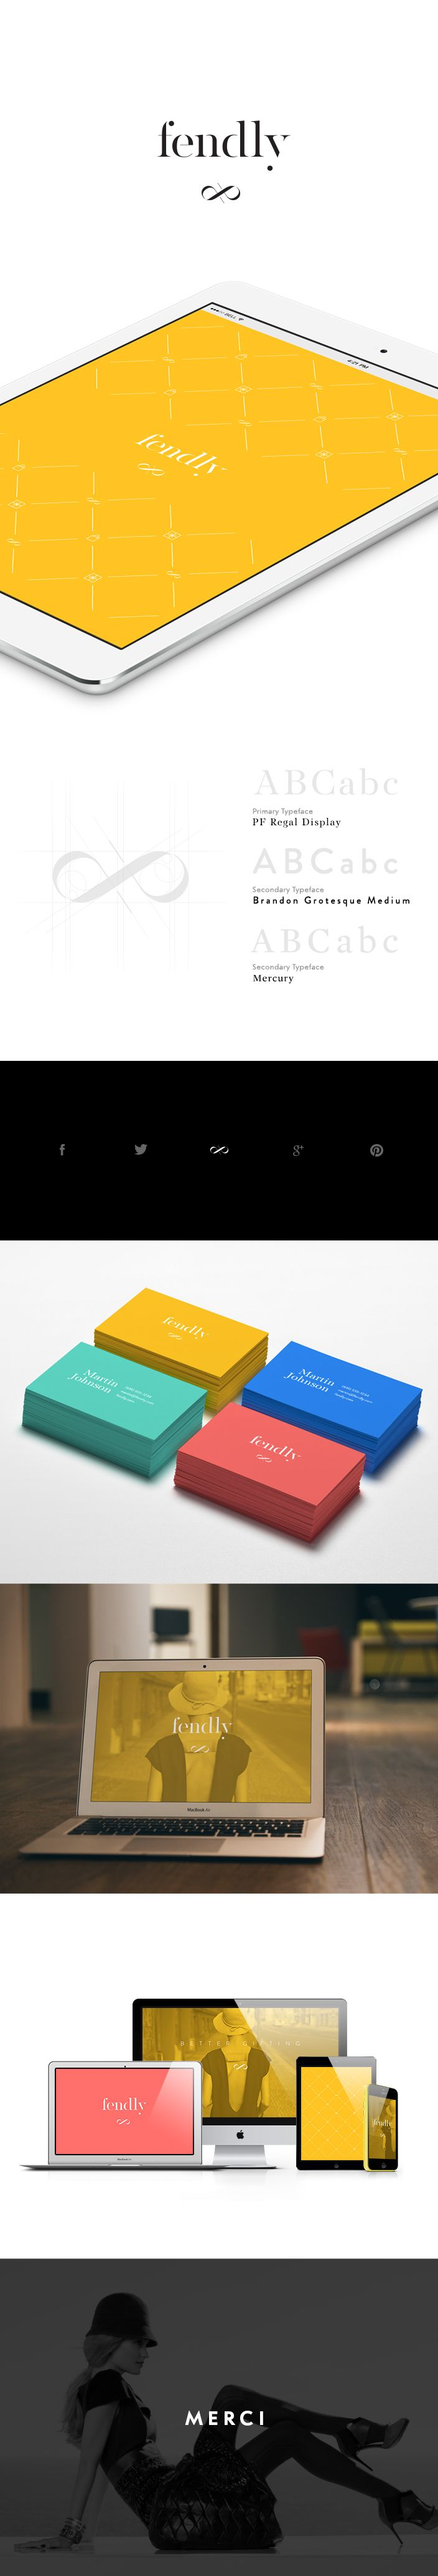 Fendly Branding - Fendly is New York based gifting platform meant to be used as a resource for product and fashion news, trends, and gifting inspiration.  #designagency #sandiegodesign #identitydesign #beautifulidentity #branding #logodesign #fashion